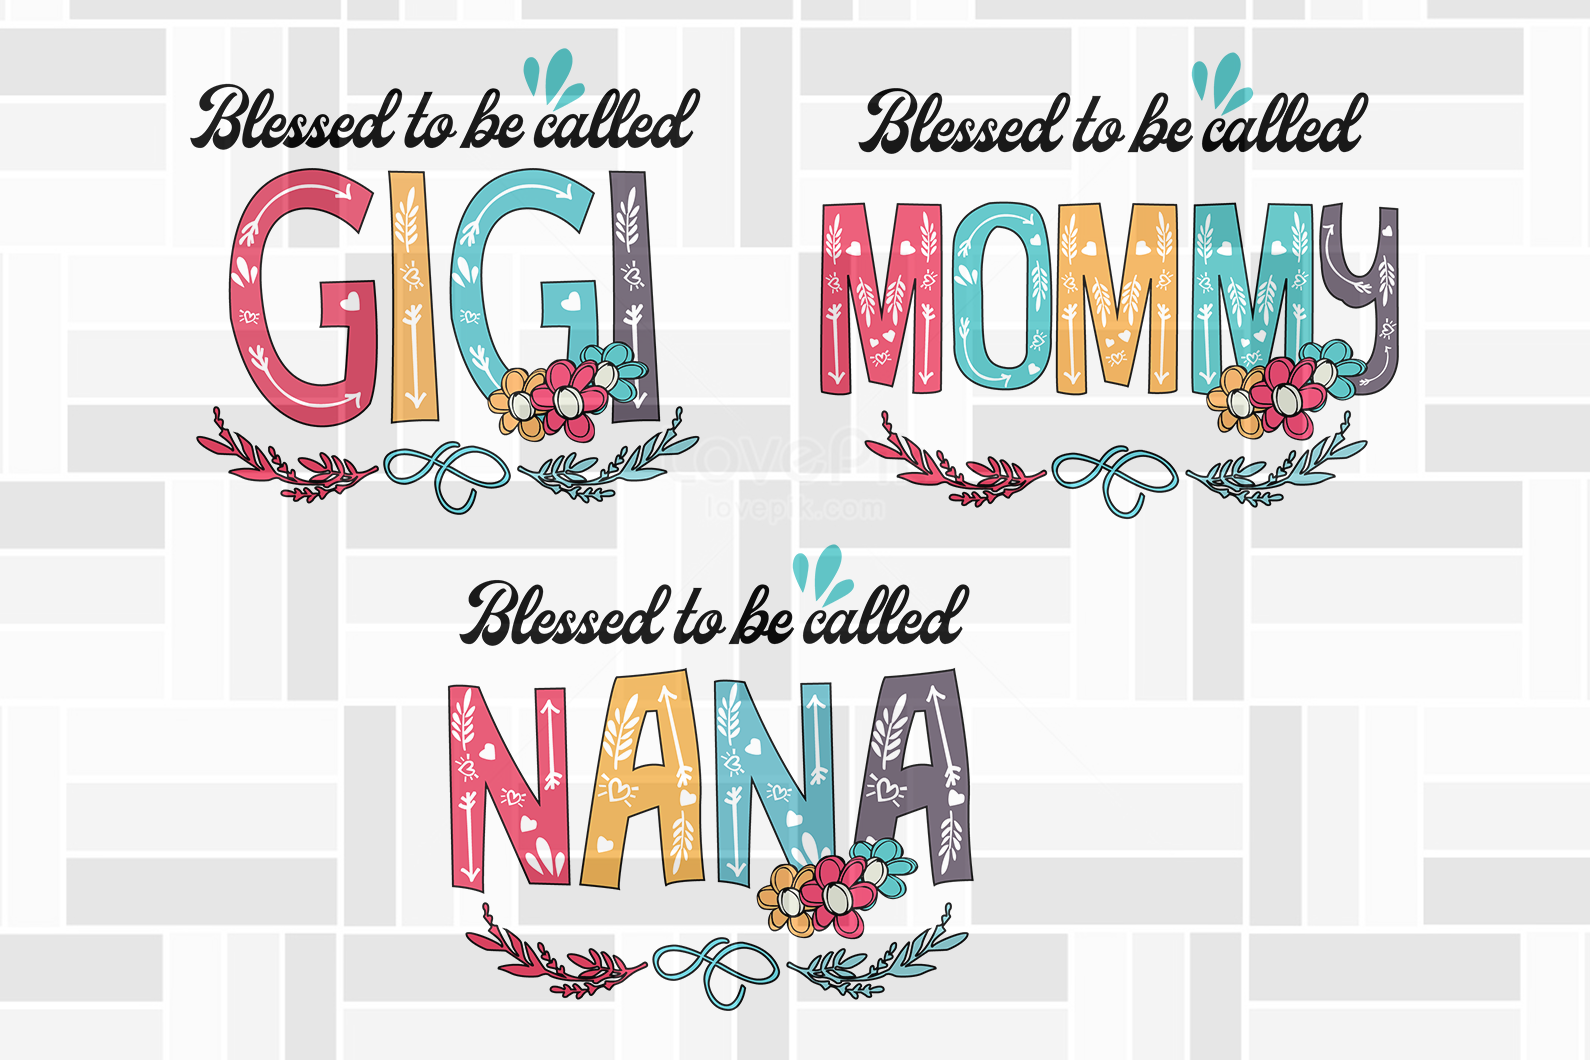 Blessed to be called bundle svg, family svg, family shirt,family gift,trending svg, Files For Silhouette, Files For Cricut, SVG, DXF, EPS, PNG, Instant Download